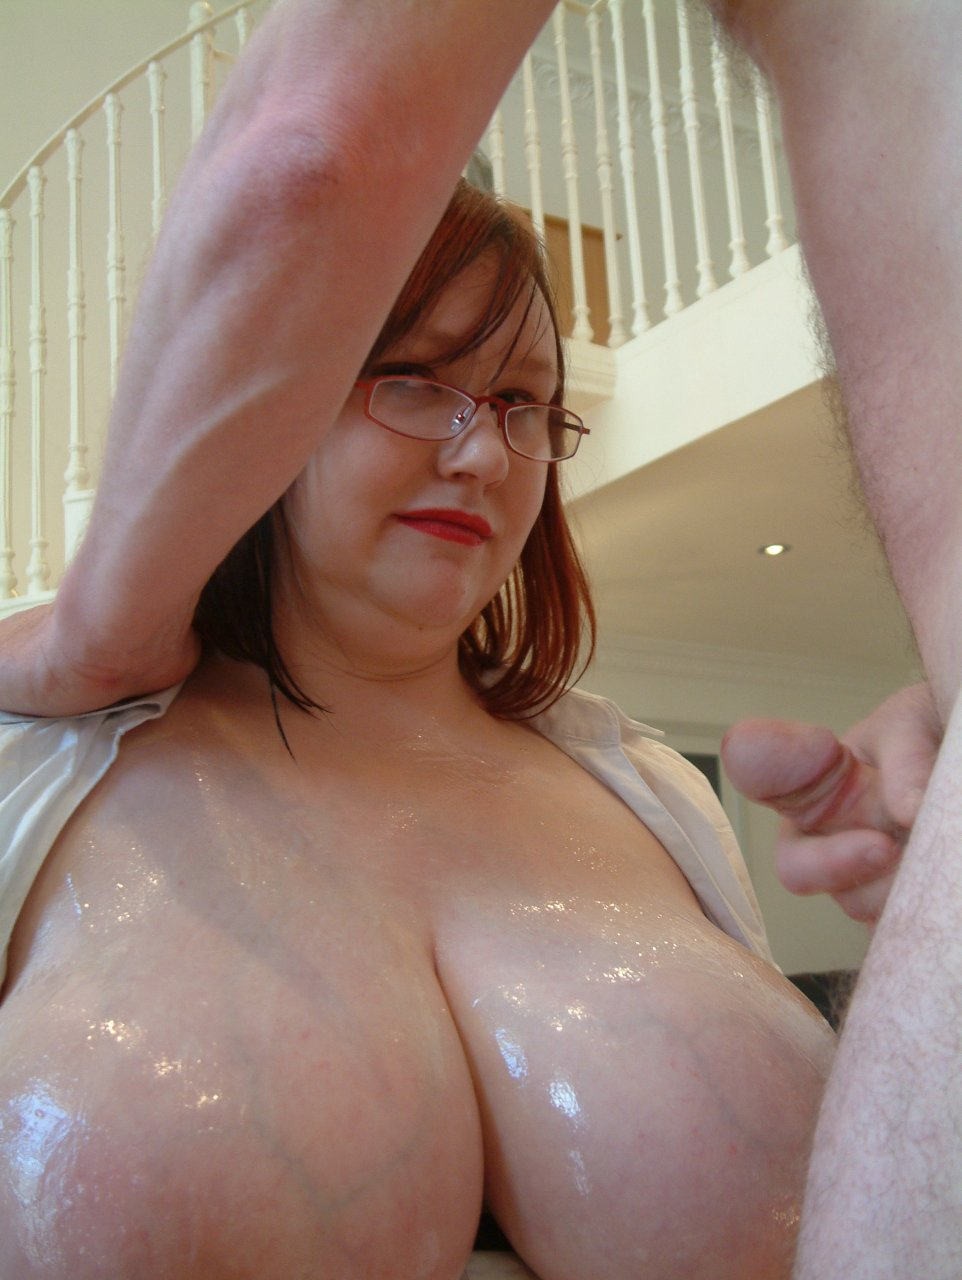 Dominatrix golden showers